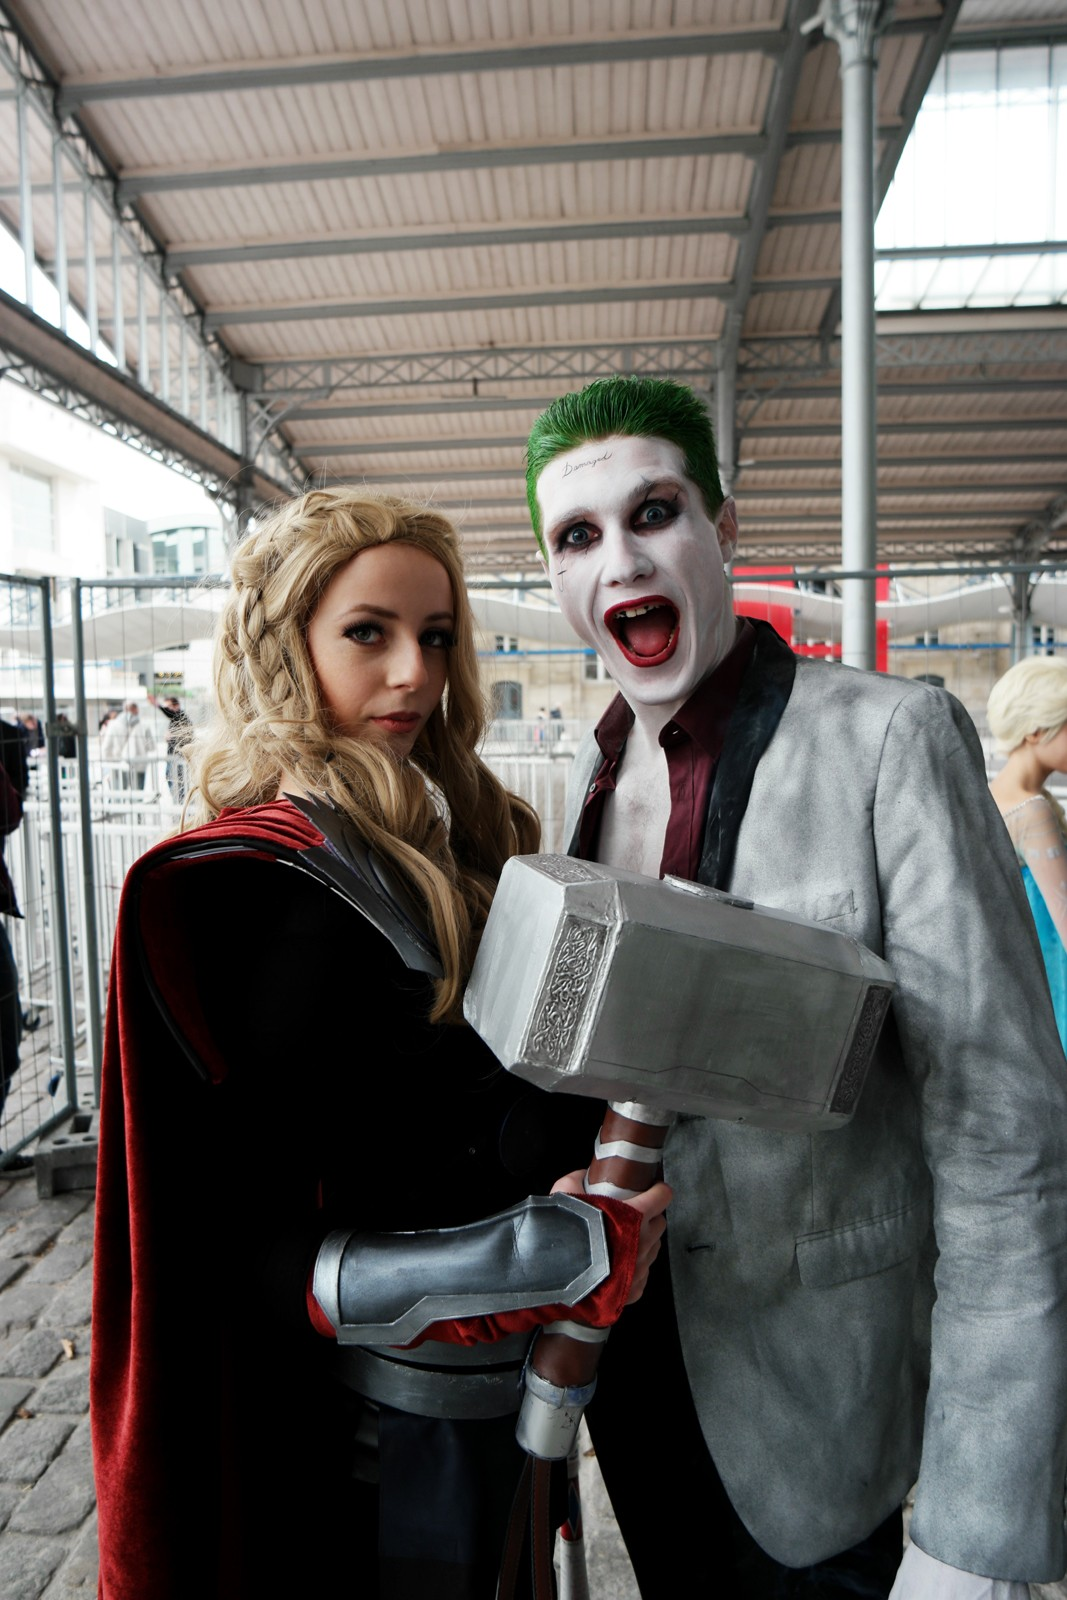 Joker and Thor girl Comic Con Paris festival 2015 Grande Halle de la Villette cosplay batman photo united states of paris blog